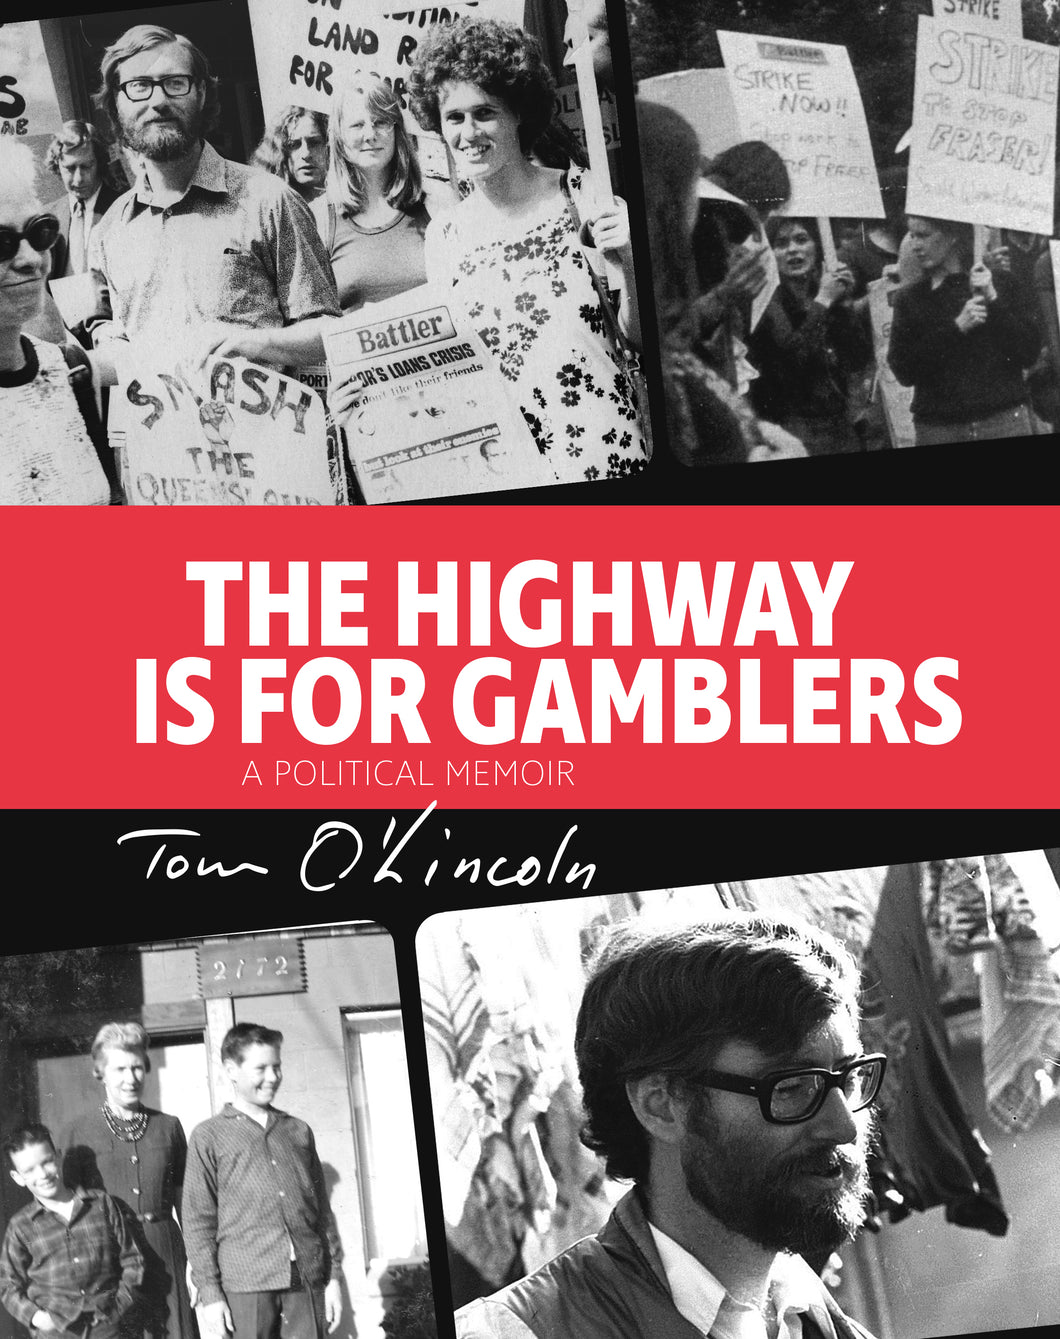 The Highway is for Gamblers: a Political Memoir